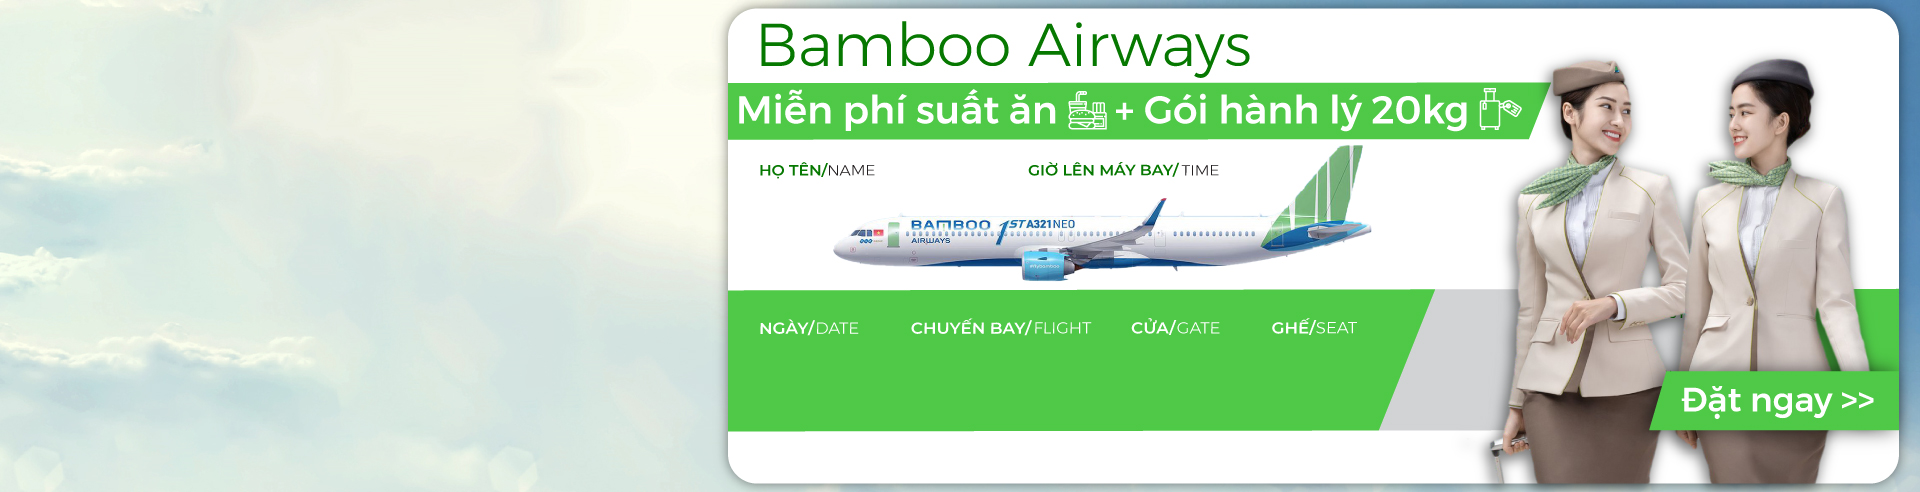 Bamboo Airway